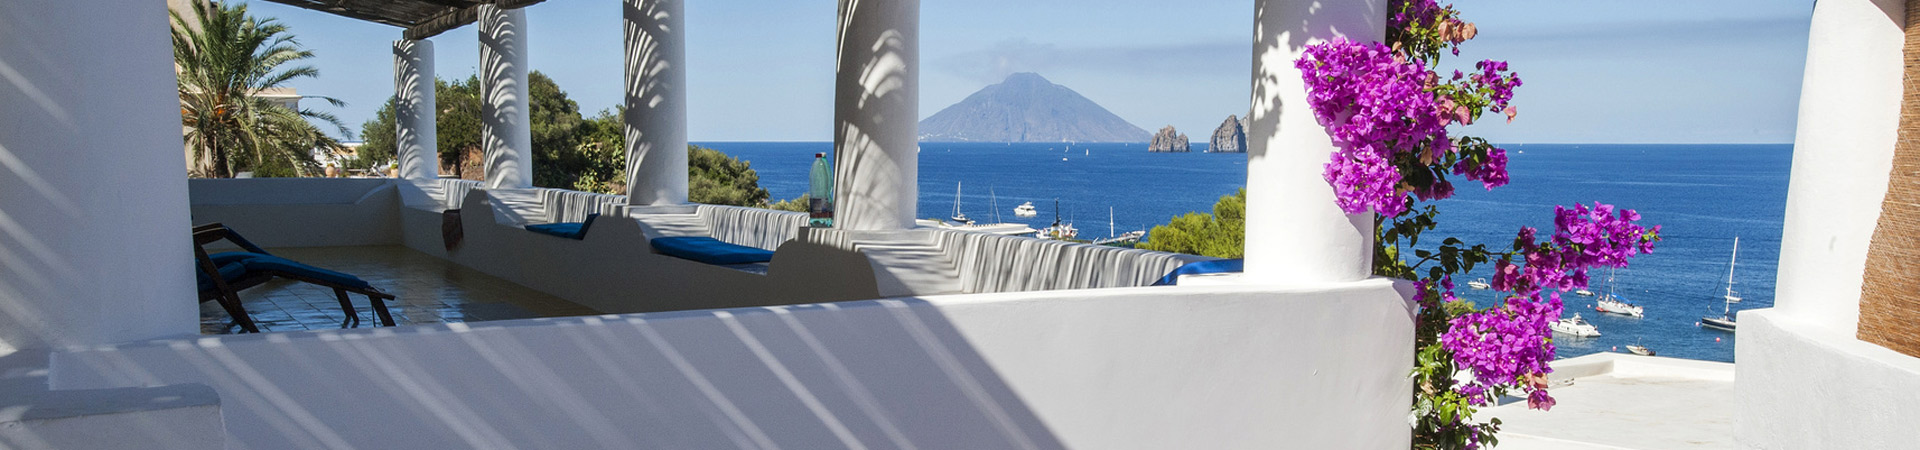 Panarea_vista_Stromboli_Fotolia_82111633_Subscription_Monthly_M_1920x450